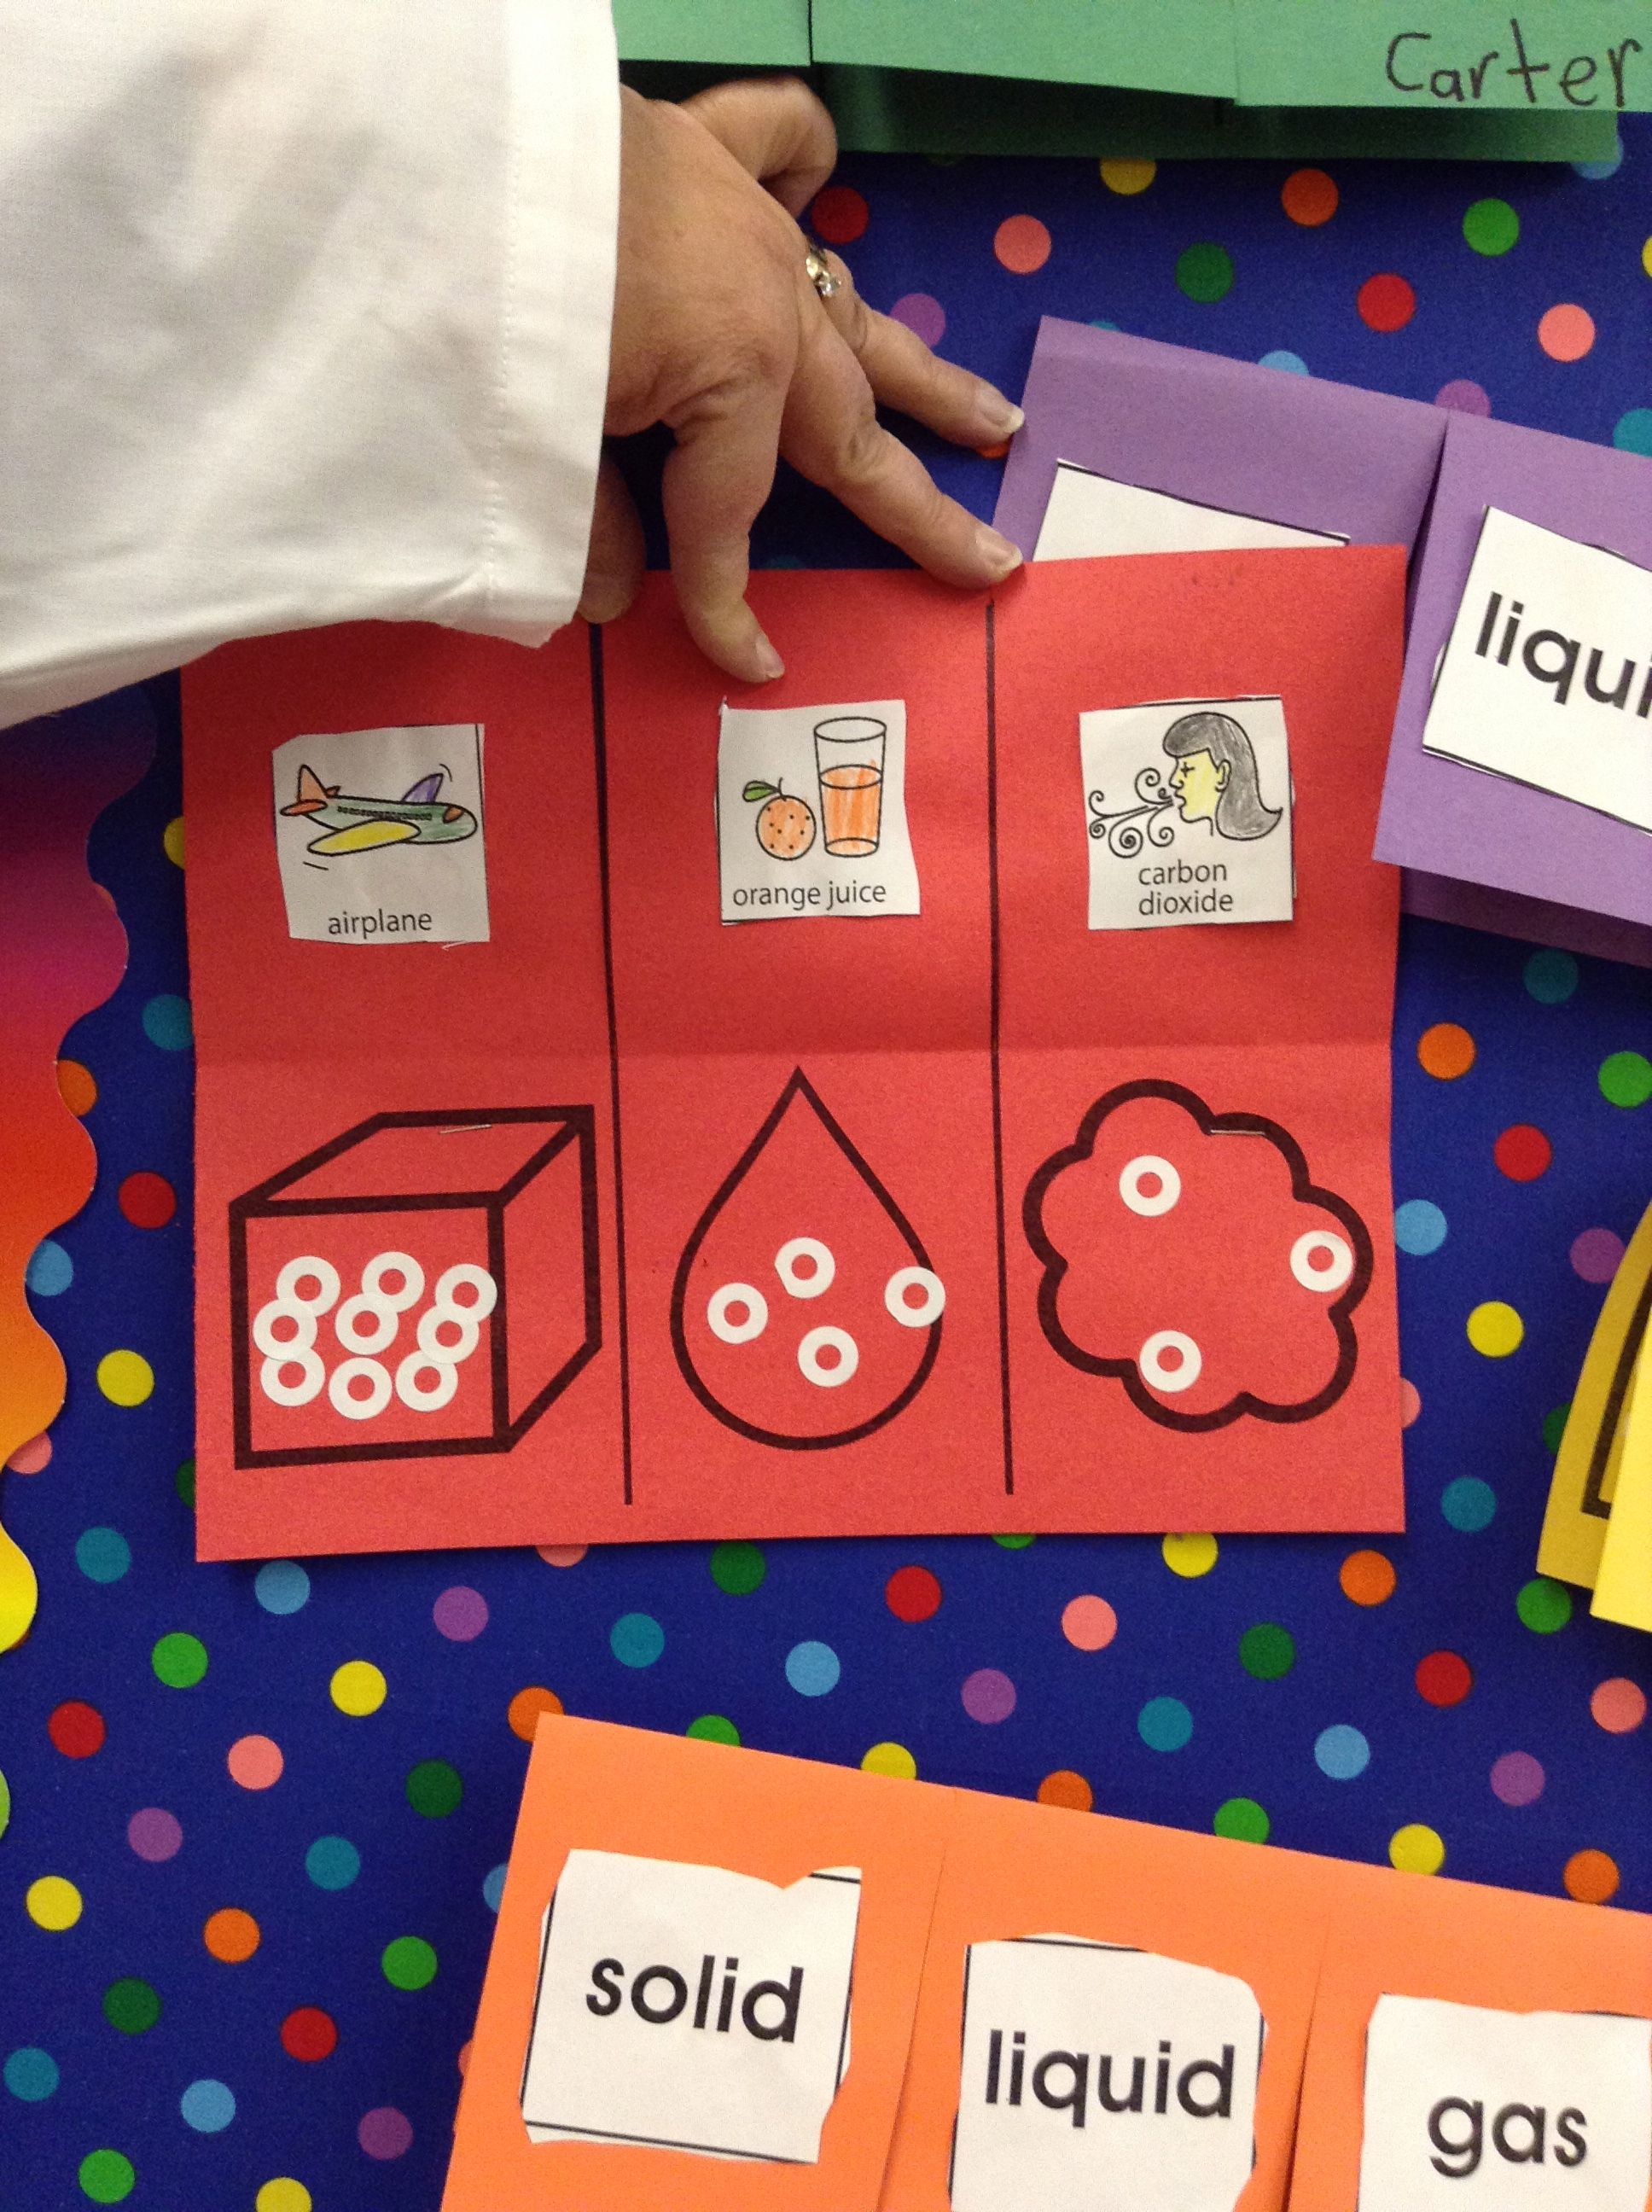 States Of Matter Flip Book Adapted From Pinterest Pin From